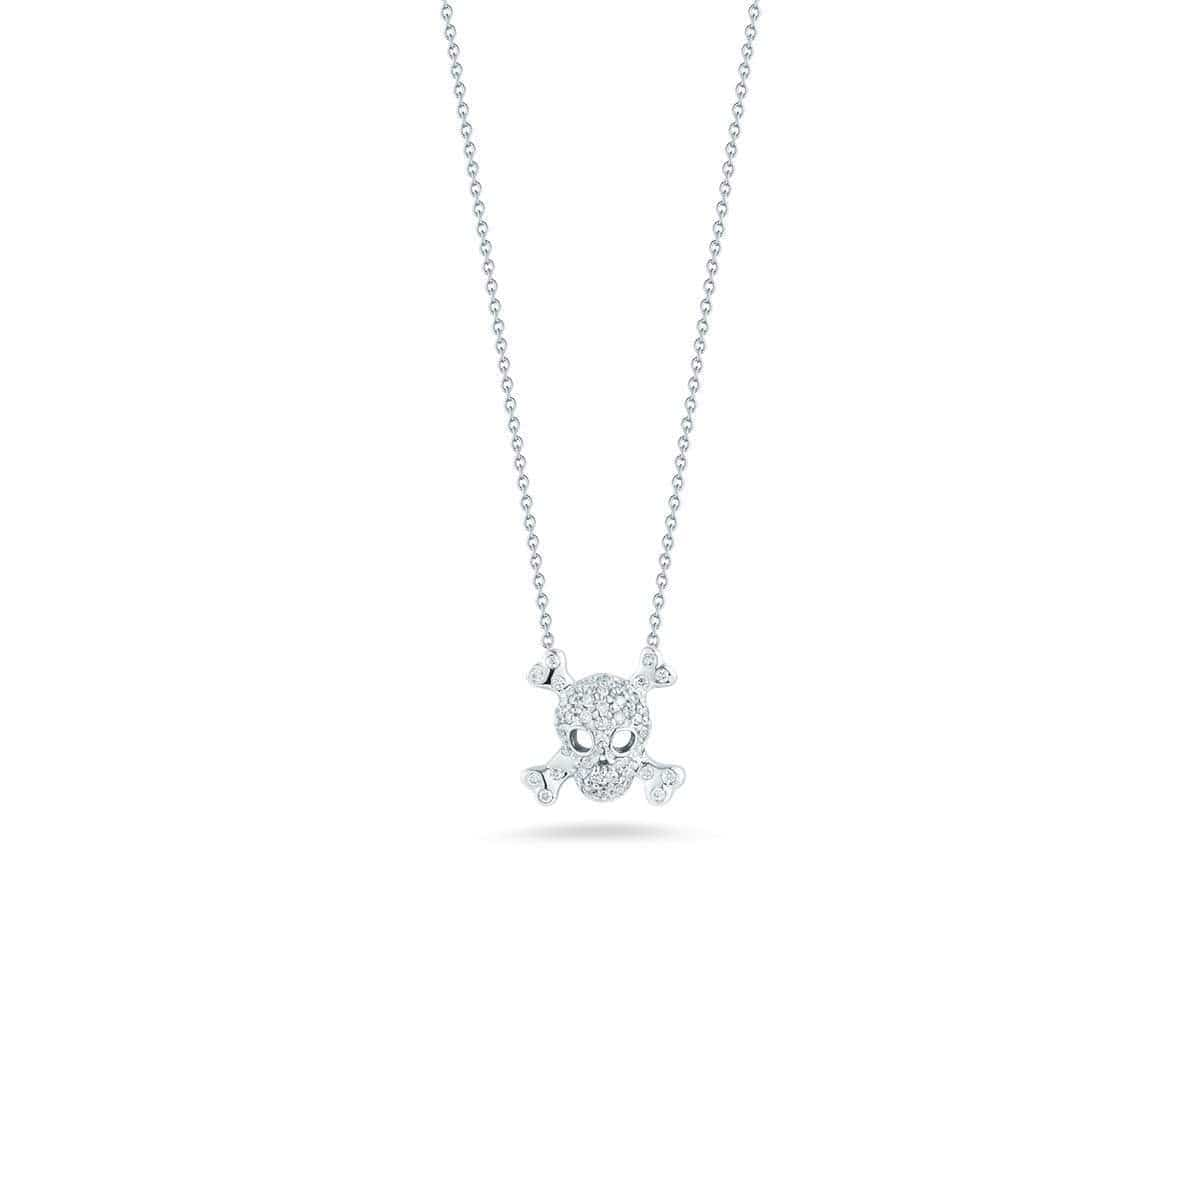 18k White Gold & Diamond Skull & Crossbone Necklace - 001403AYCHX0-Roberto Coin-Renee Taylor Gallery